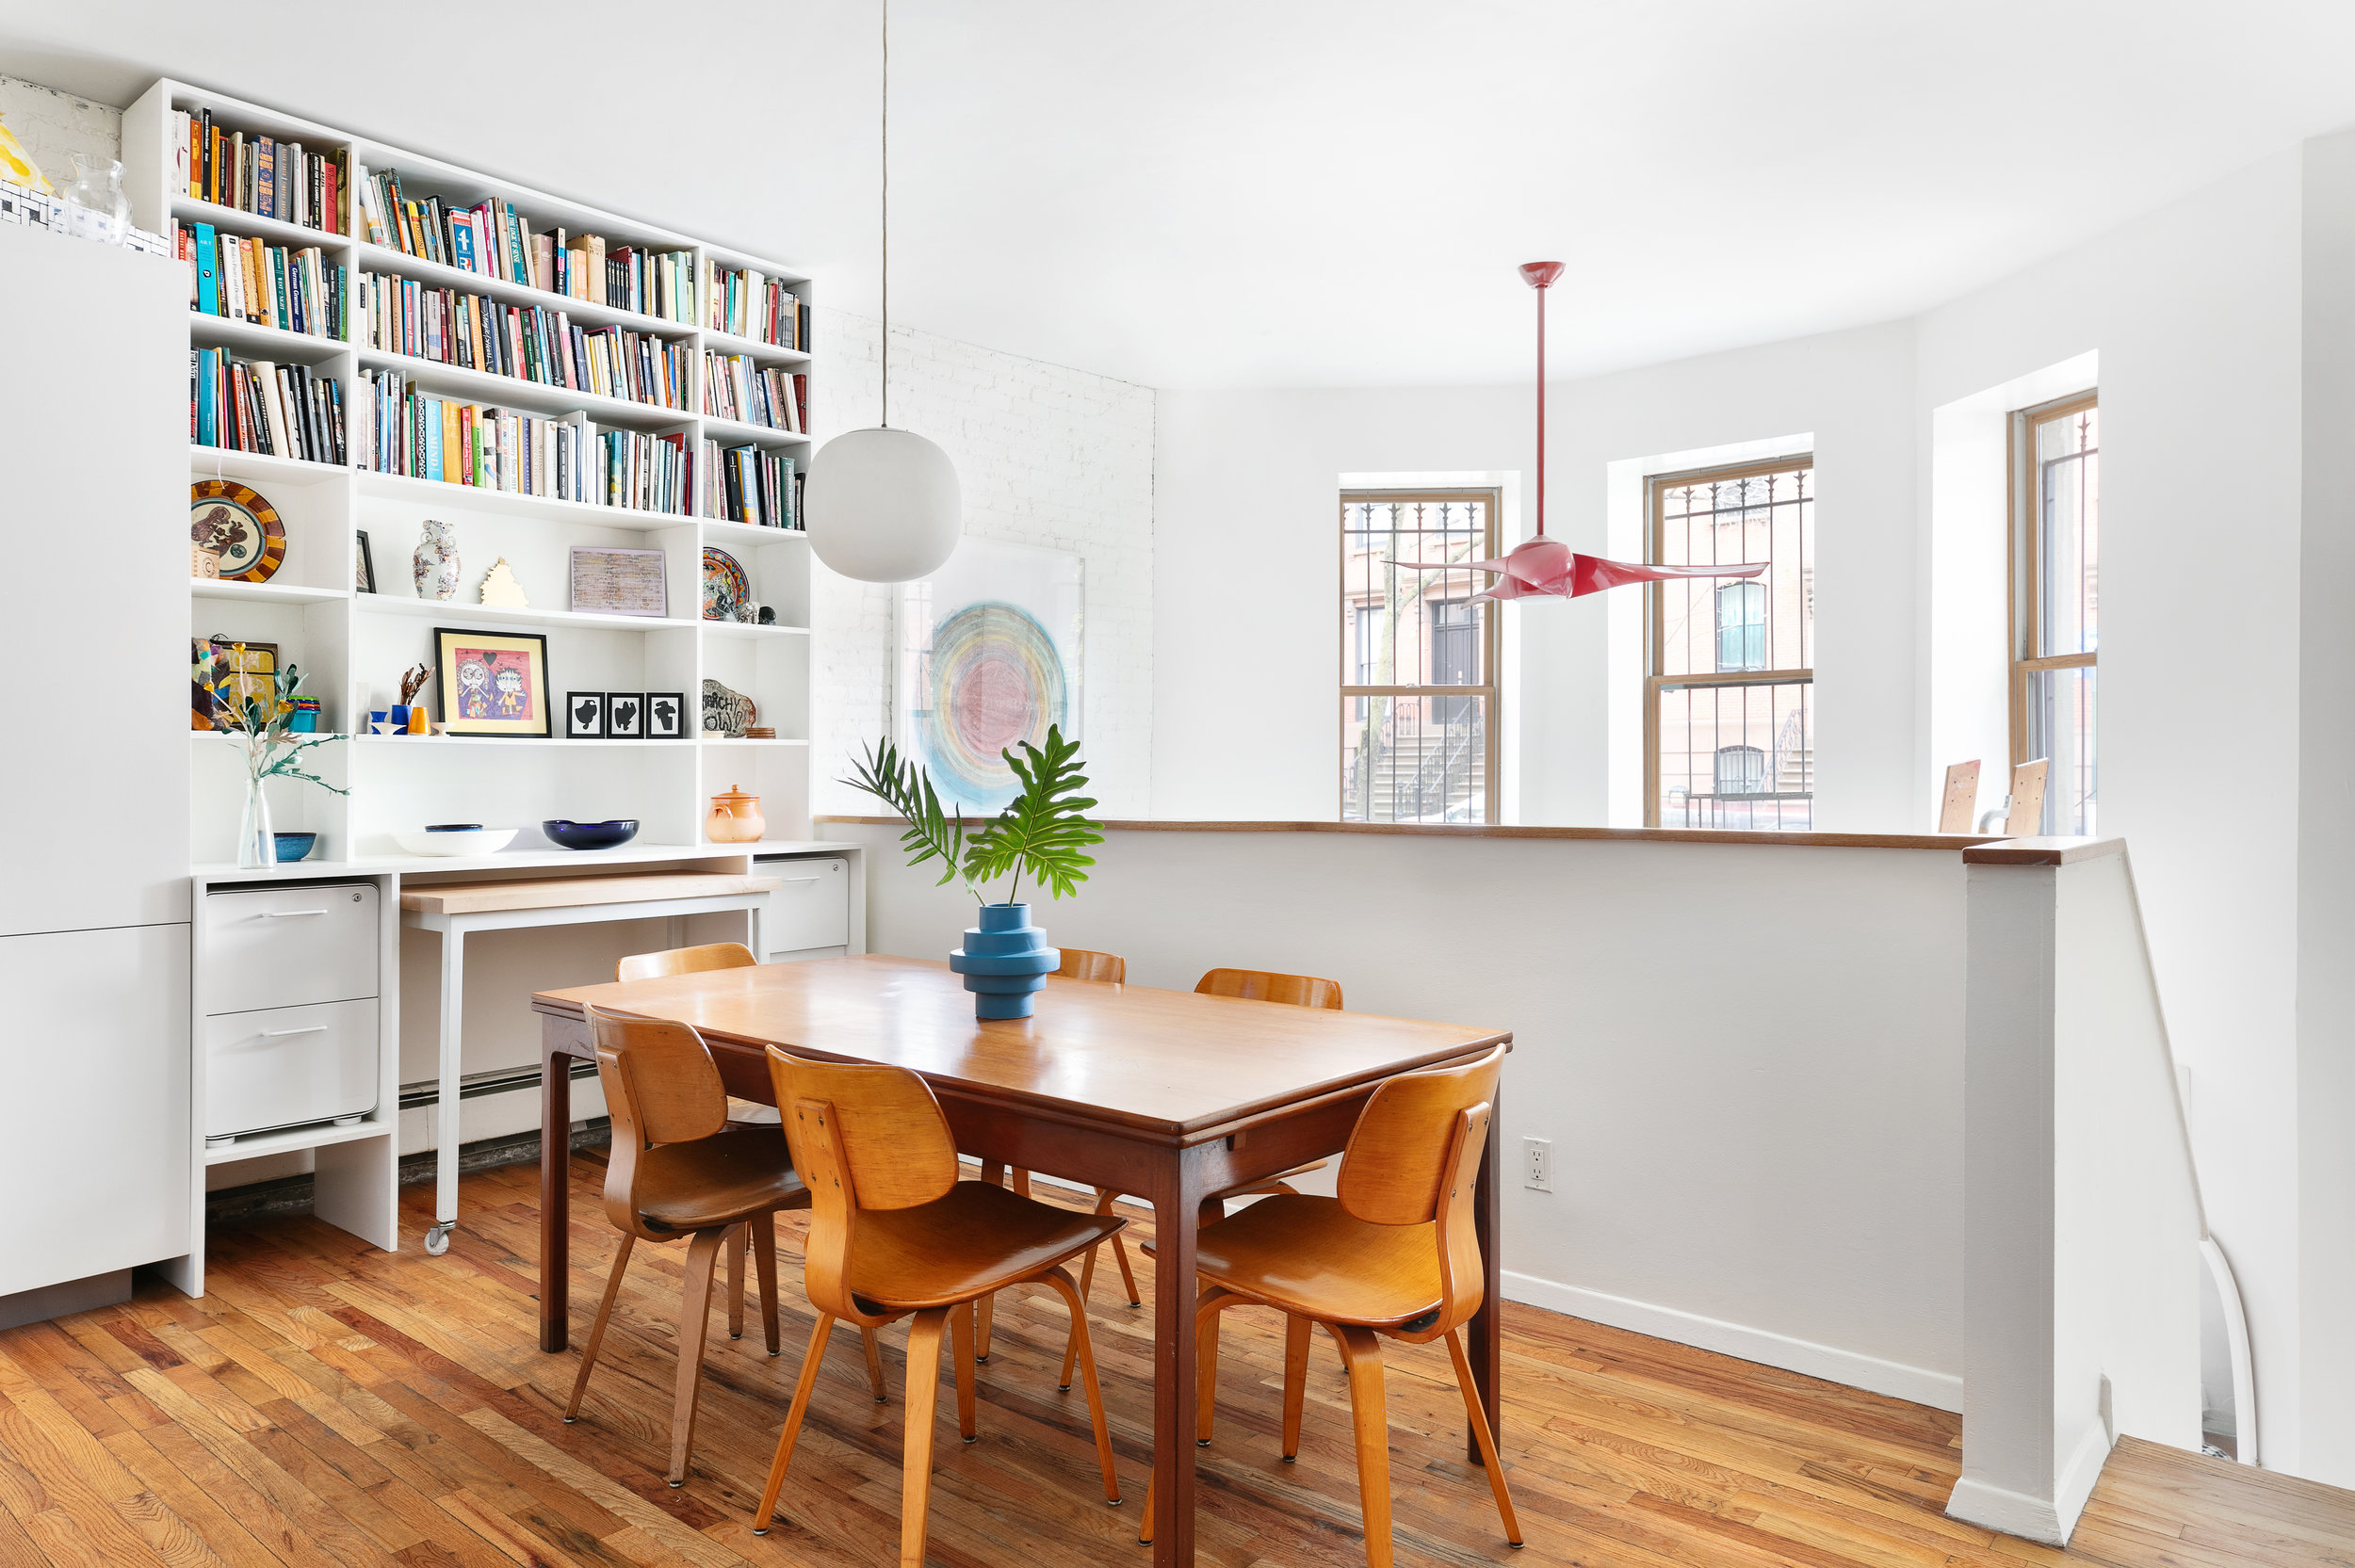 IN CONTRACT: 155 Lafayette Ave, 1C